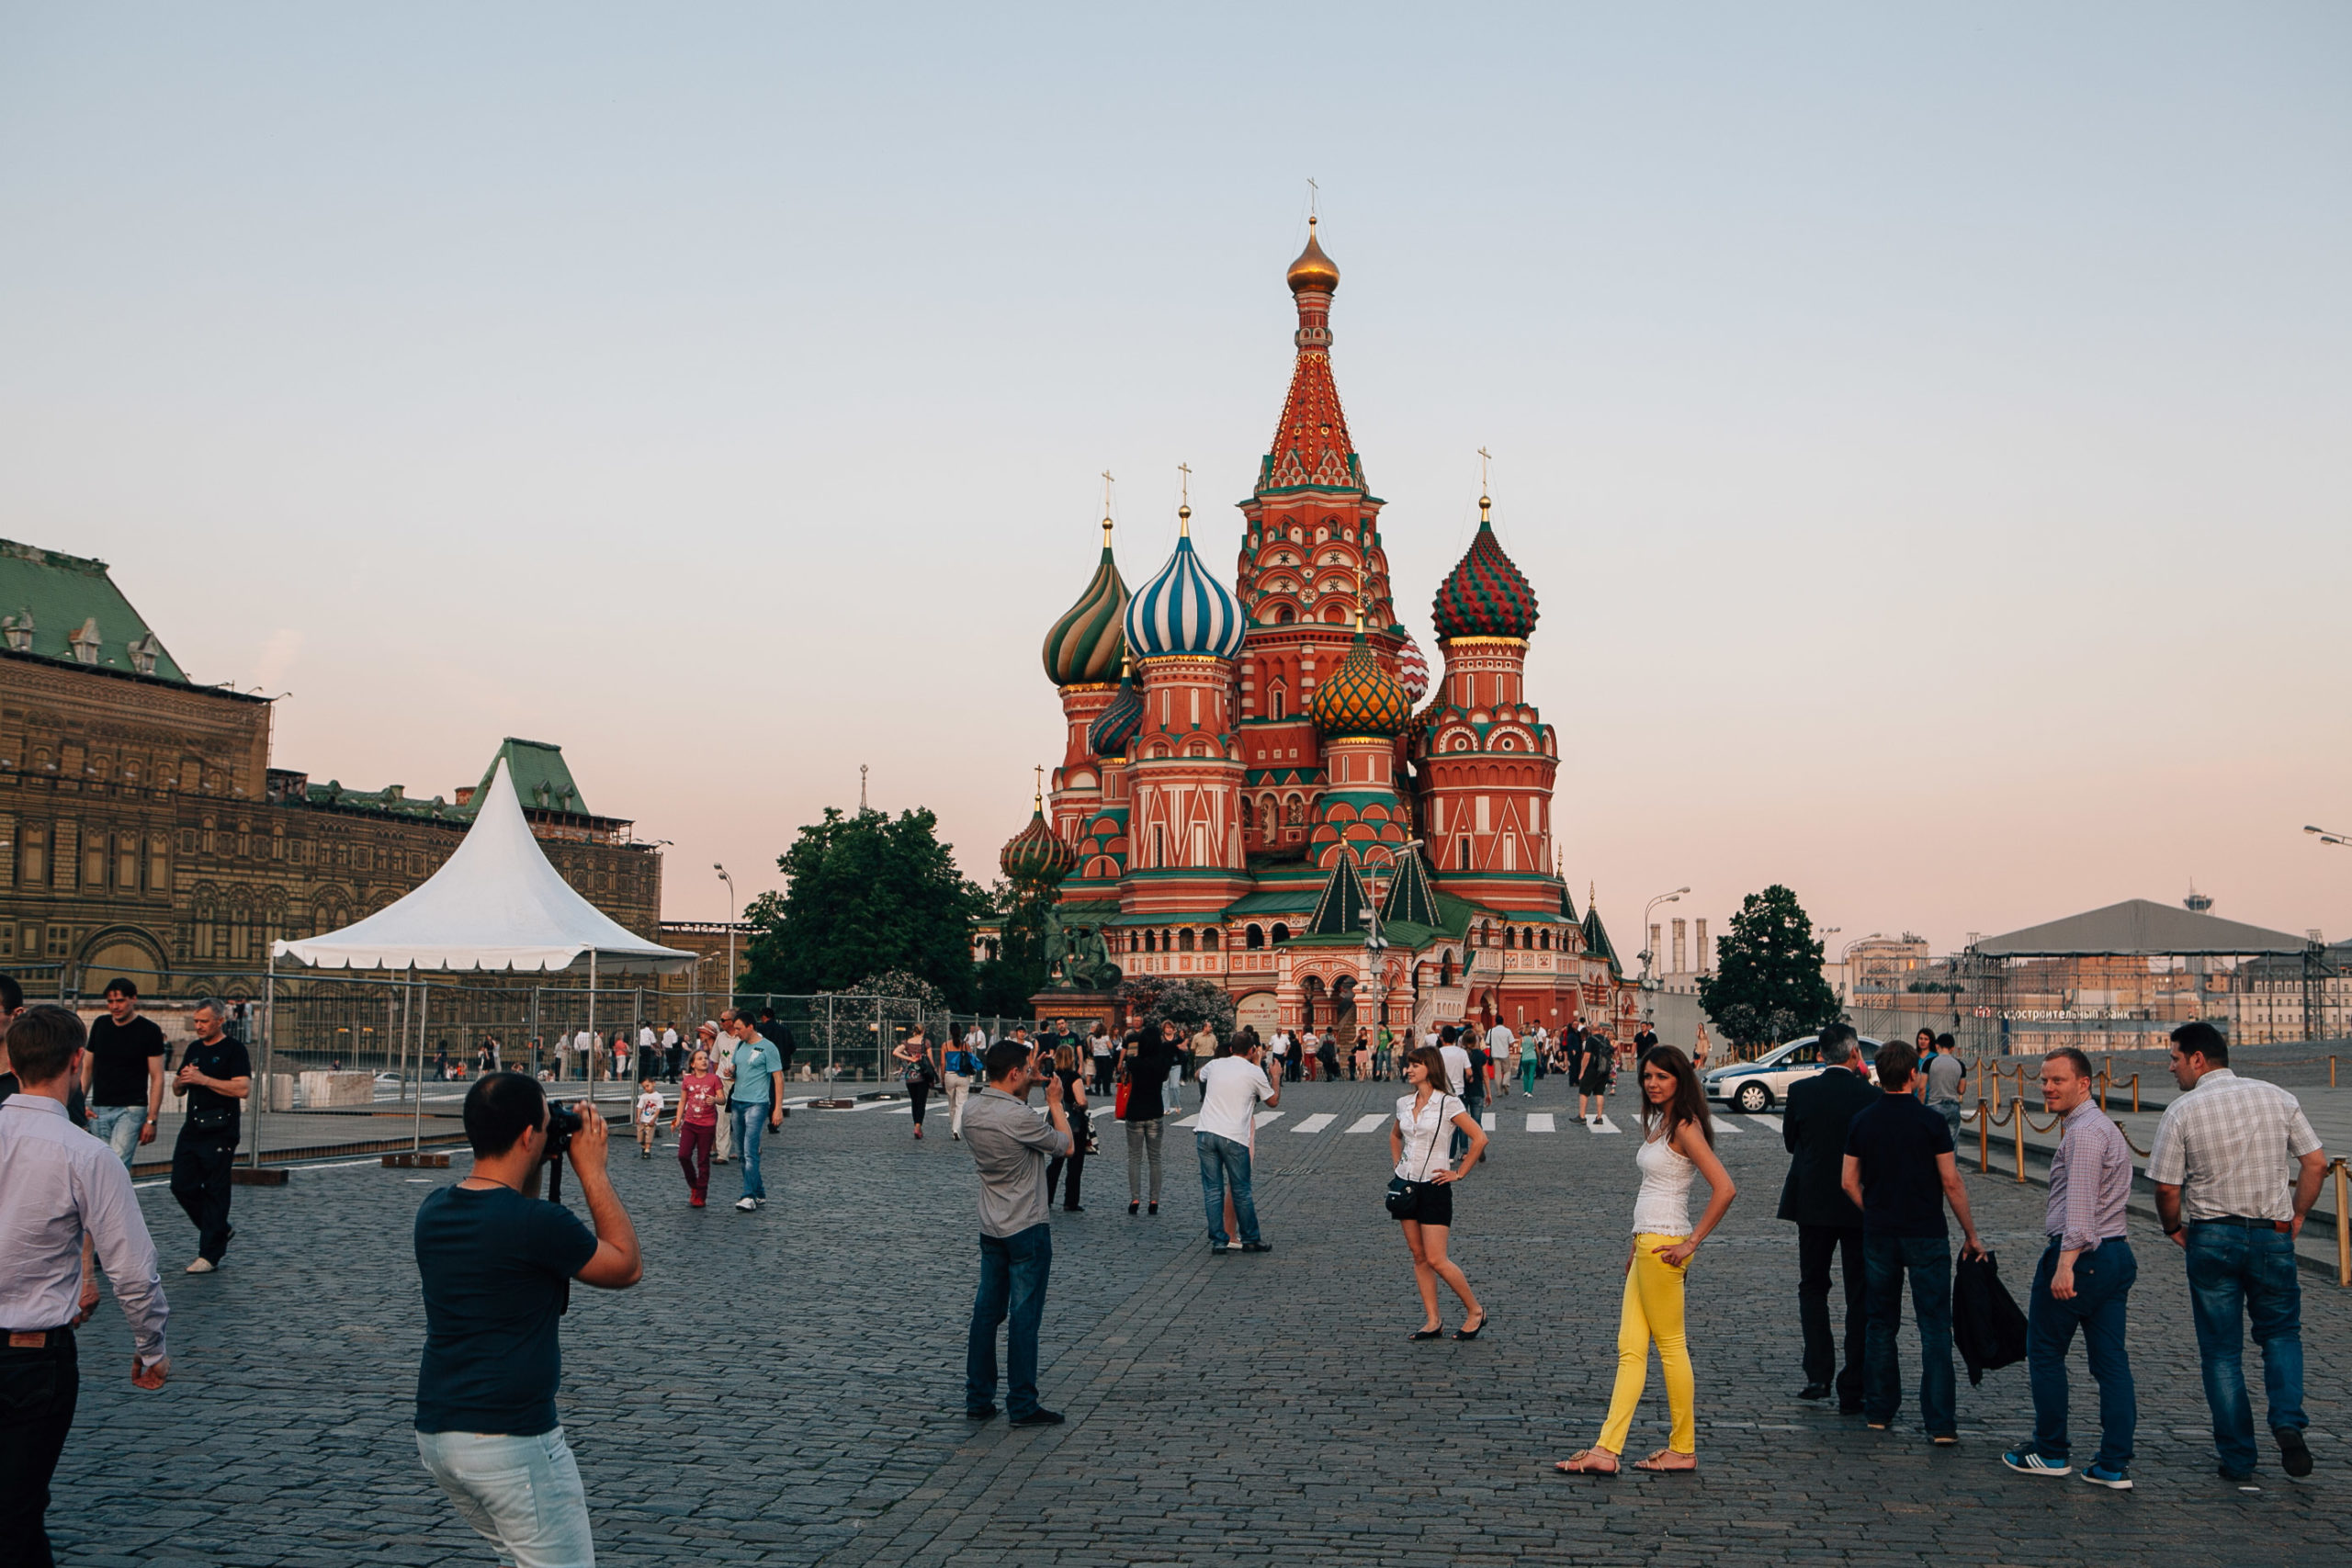 An ornate cathedral in Russia